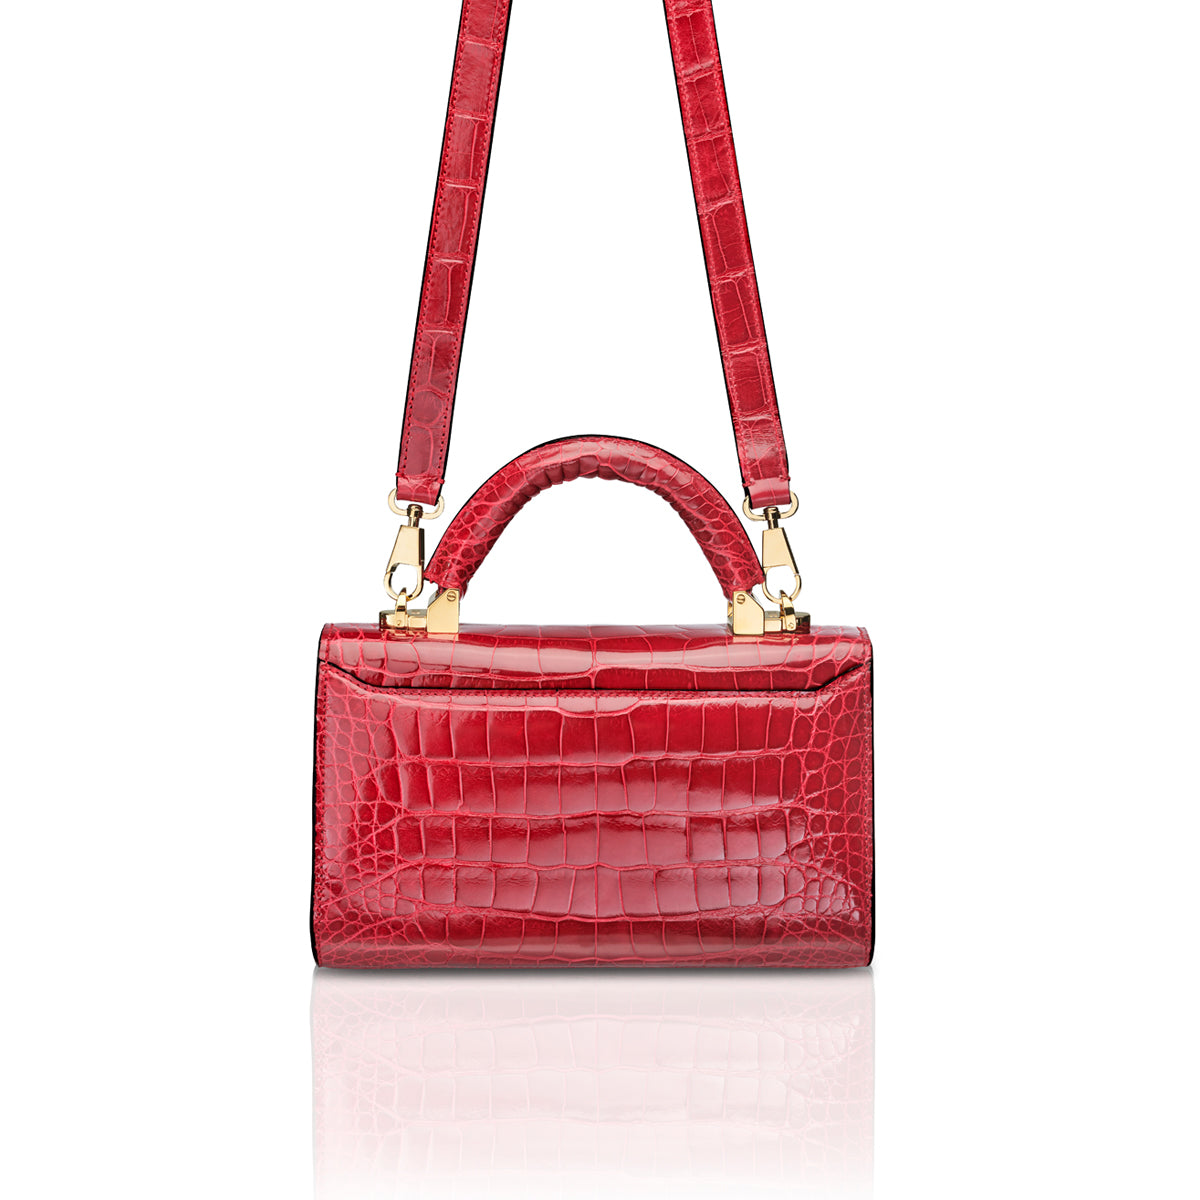 Top Handle 2.0 Mini - Cerise Alligator